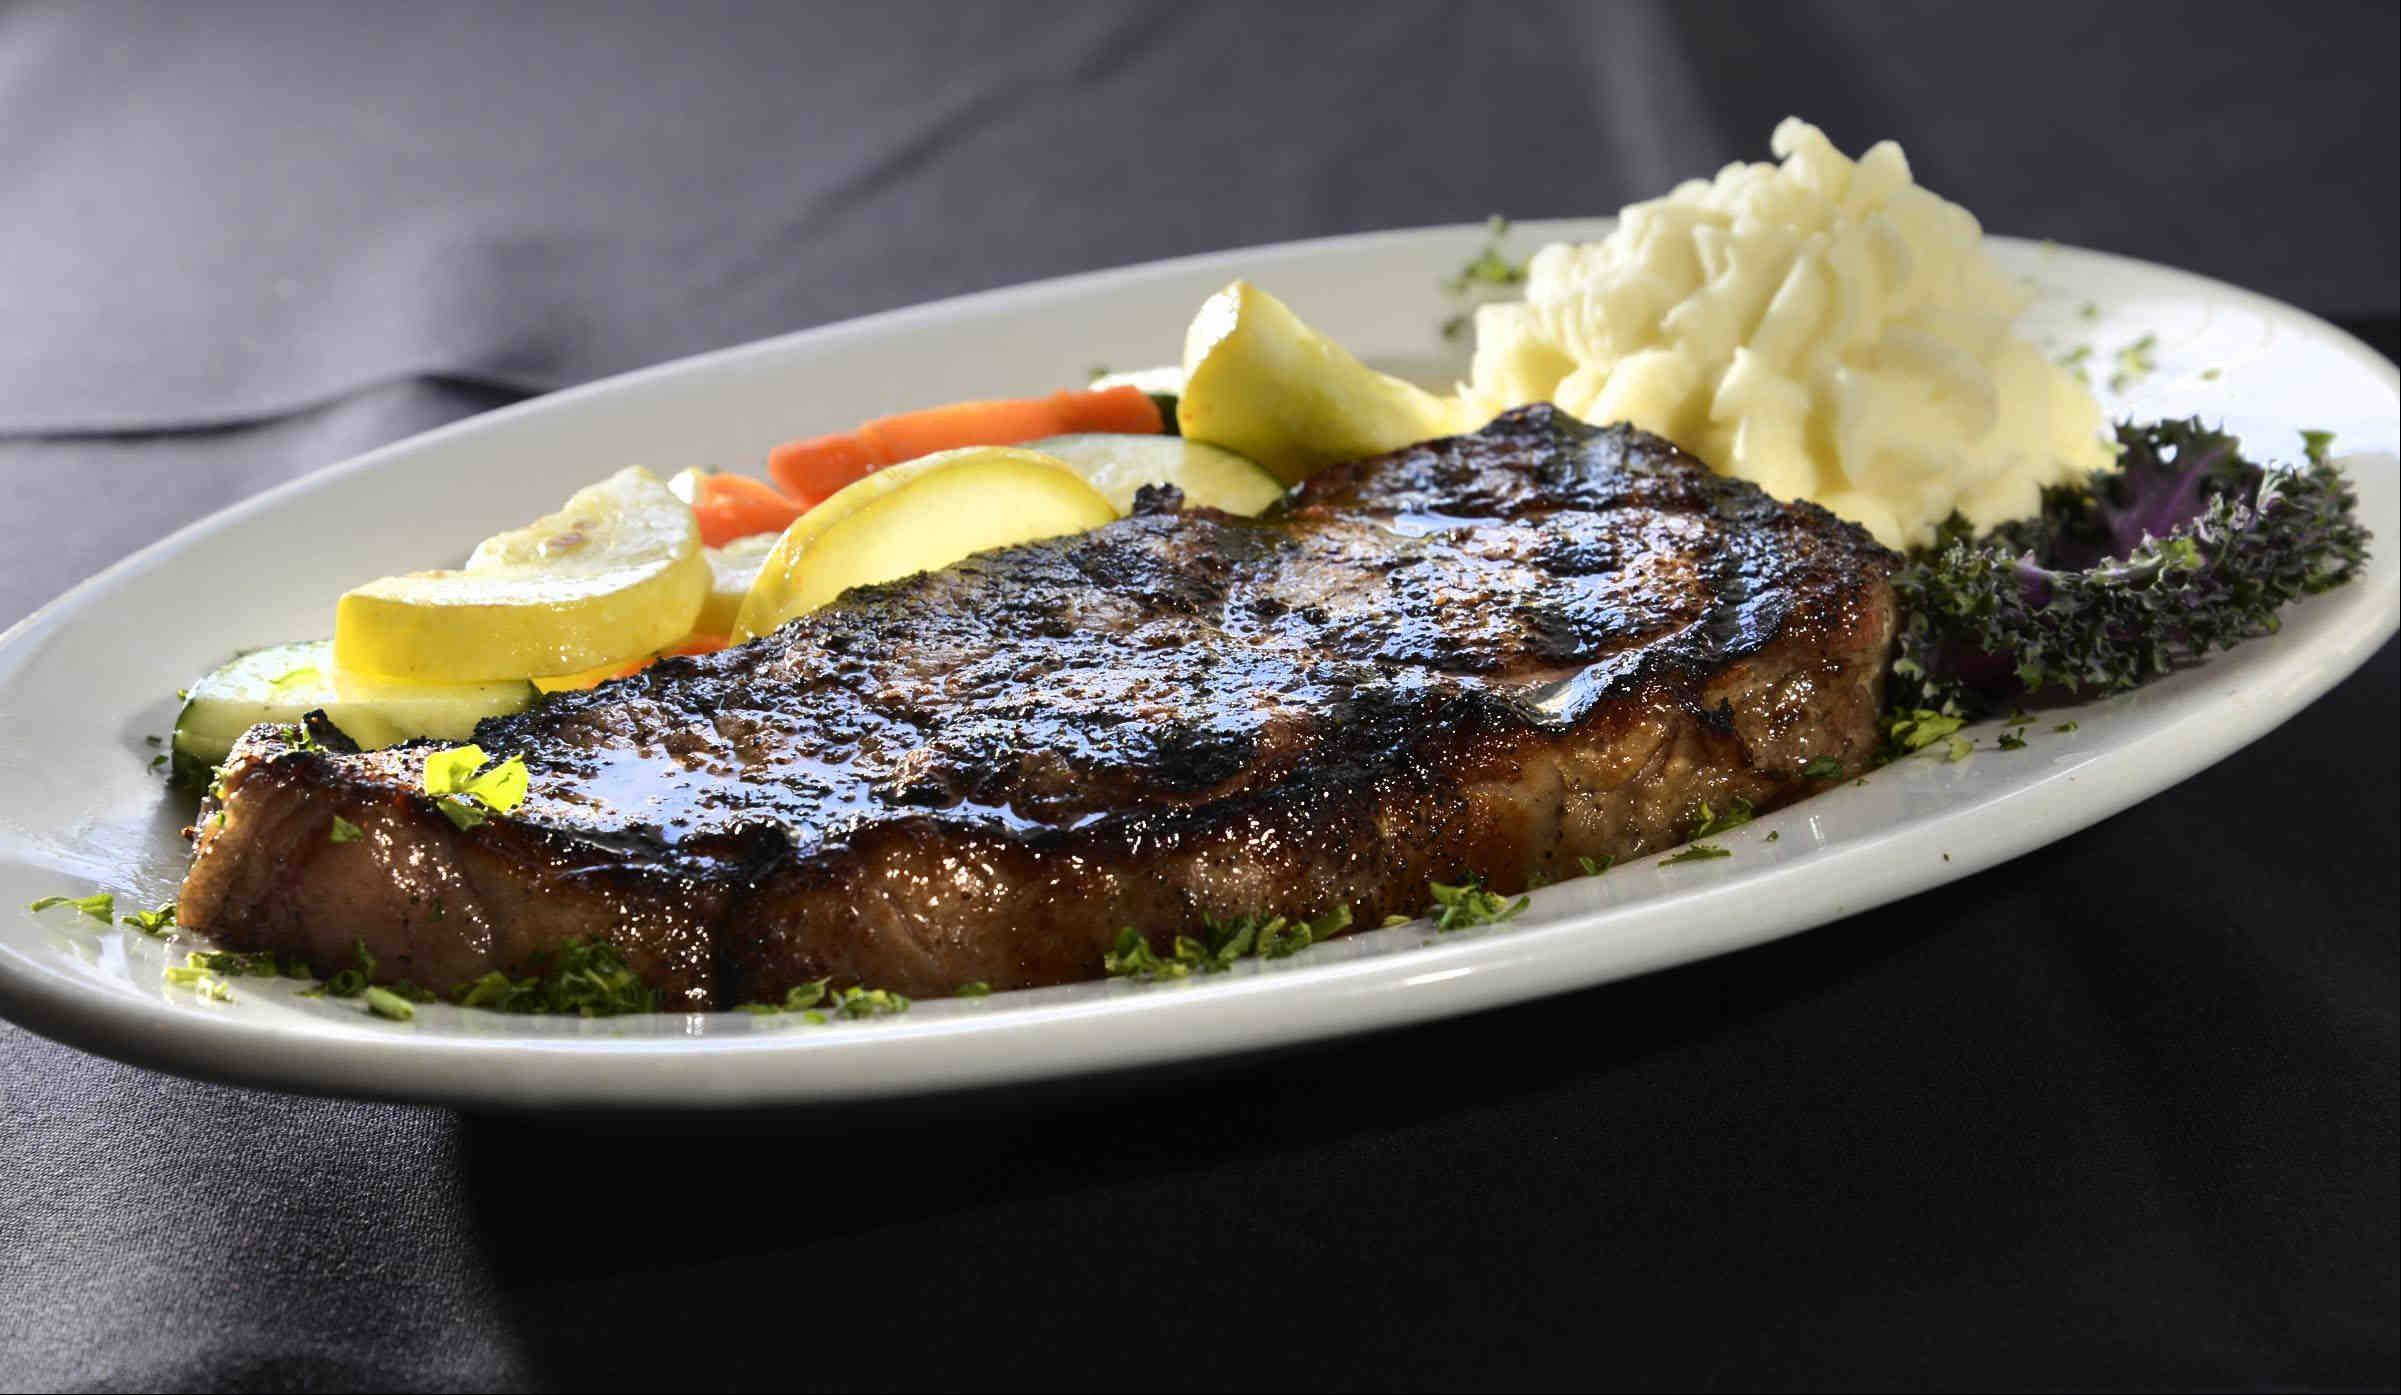 The New York Strip steak with mashed potatoes and vegetable medley at Pier 99 in Port Barrington.